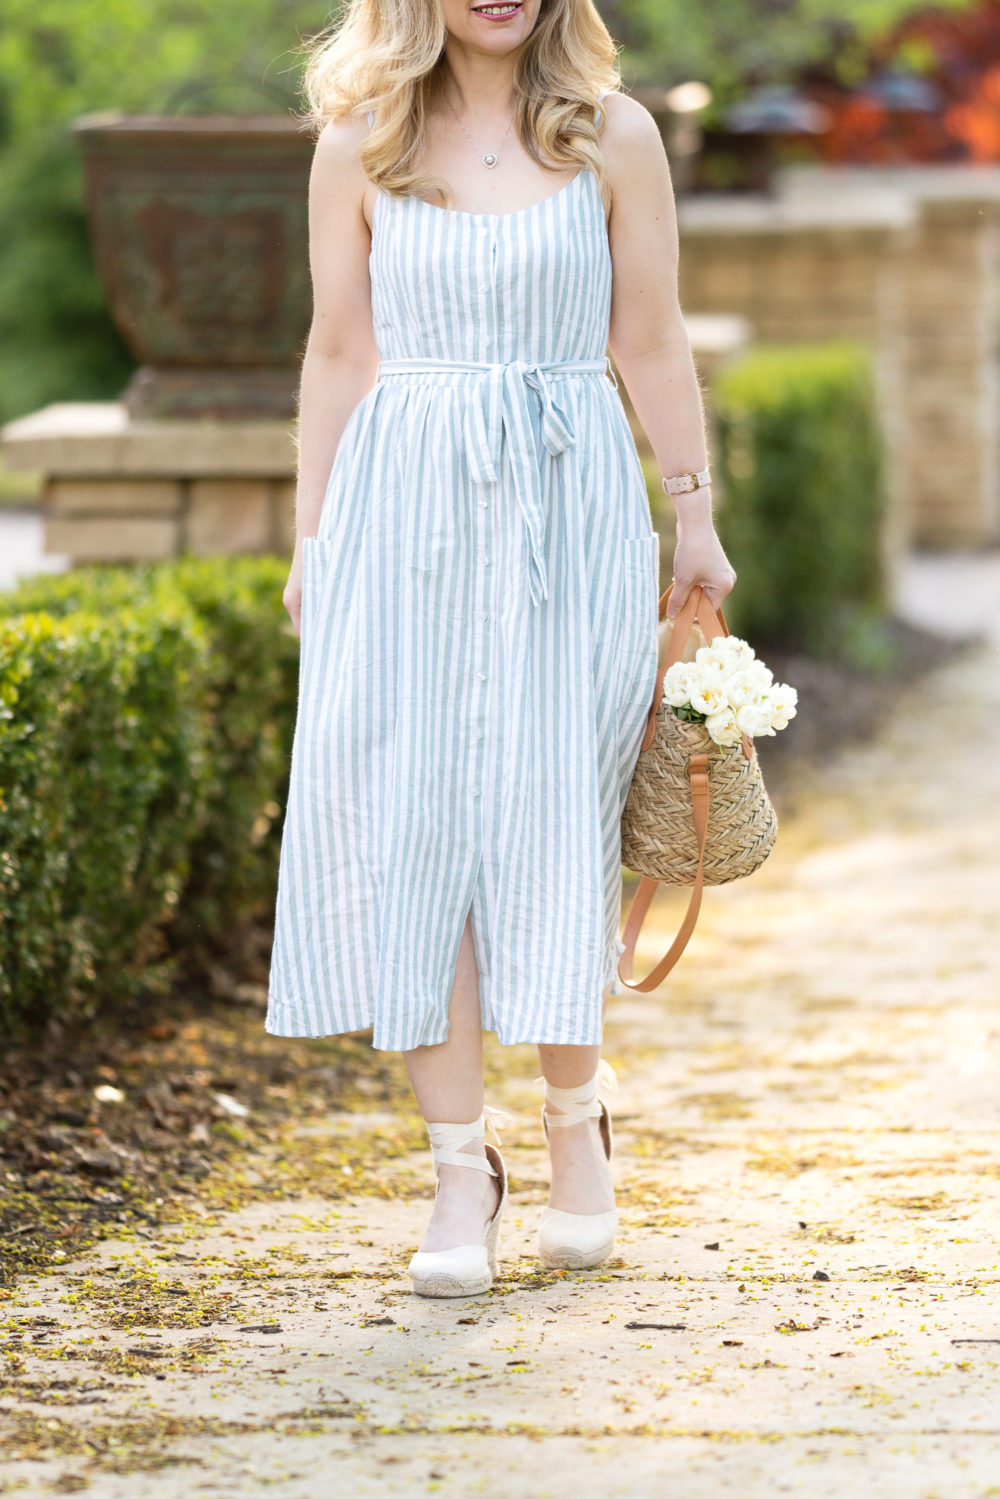 Petite Fashion Blog | Morning Lavender | Elena Mint Green Striped Midi Dress | Striped Dress | Summer Dresses